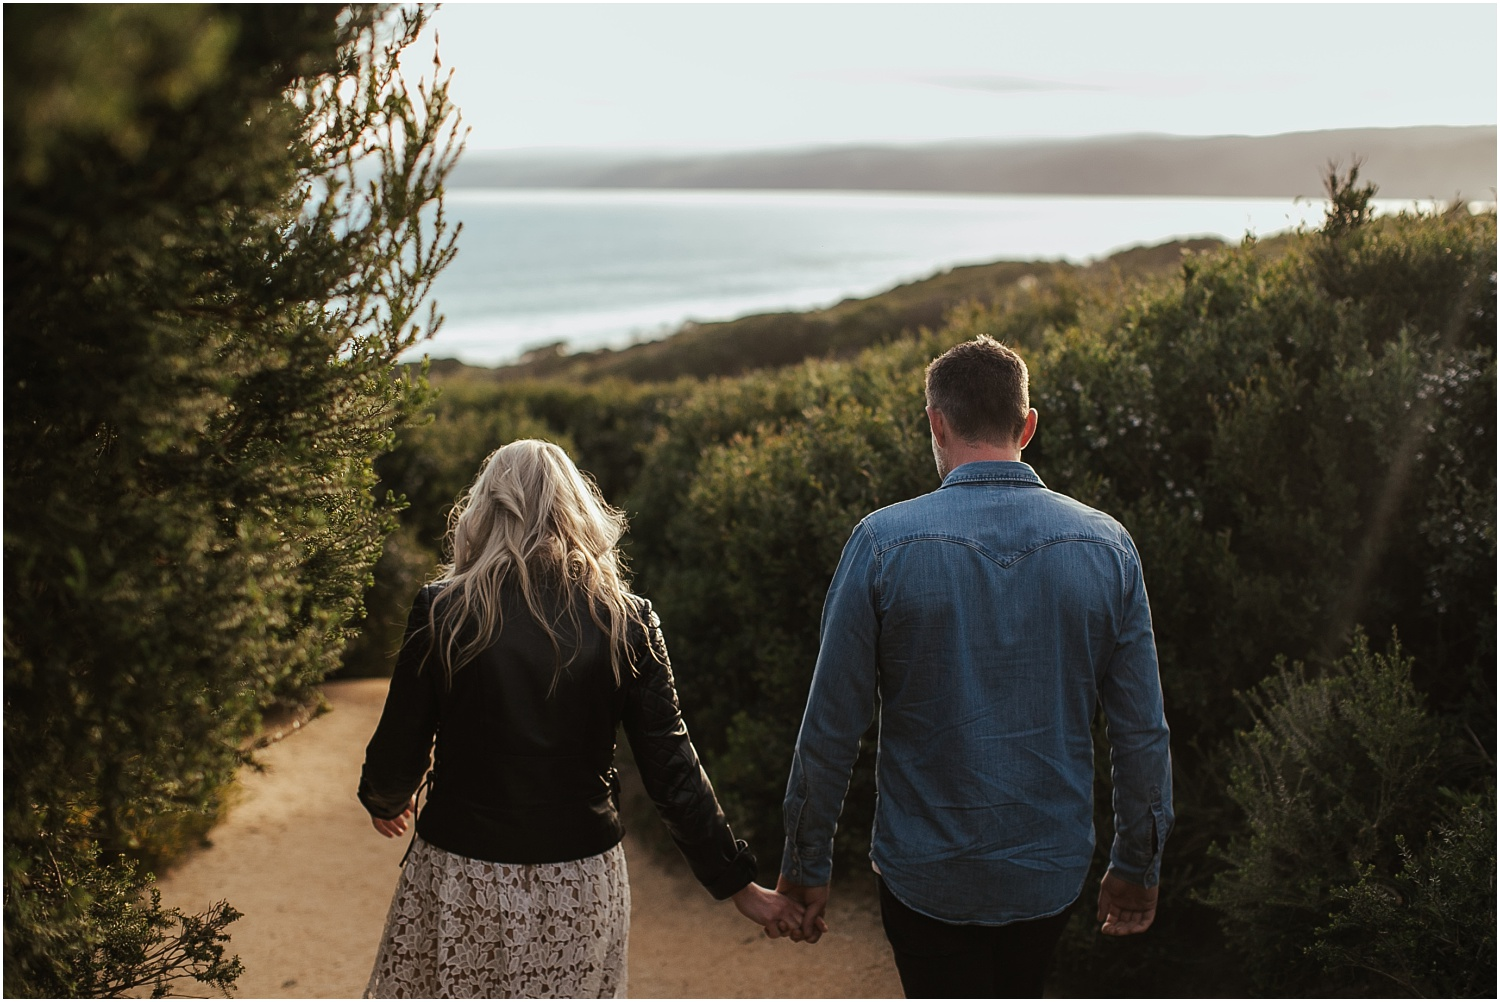 Greer and Sam's engagement shoot in Aireys Inlet on the Great Ocean Road, surf coast and Fairhaven._0002.jpg